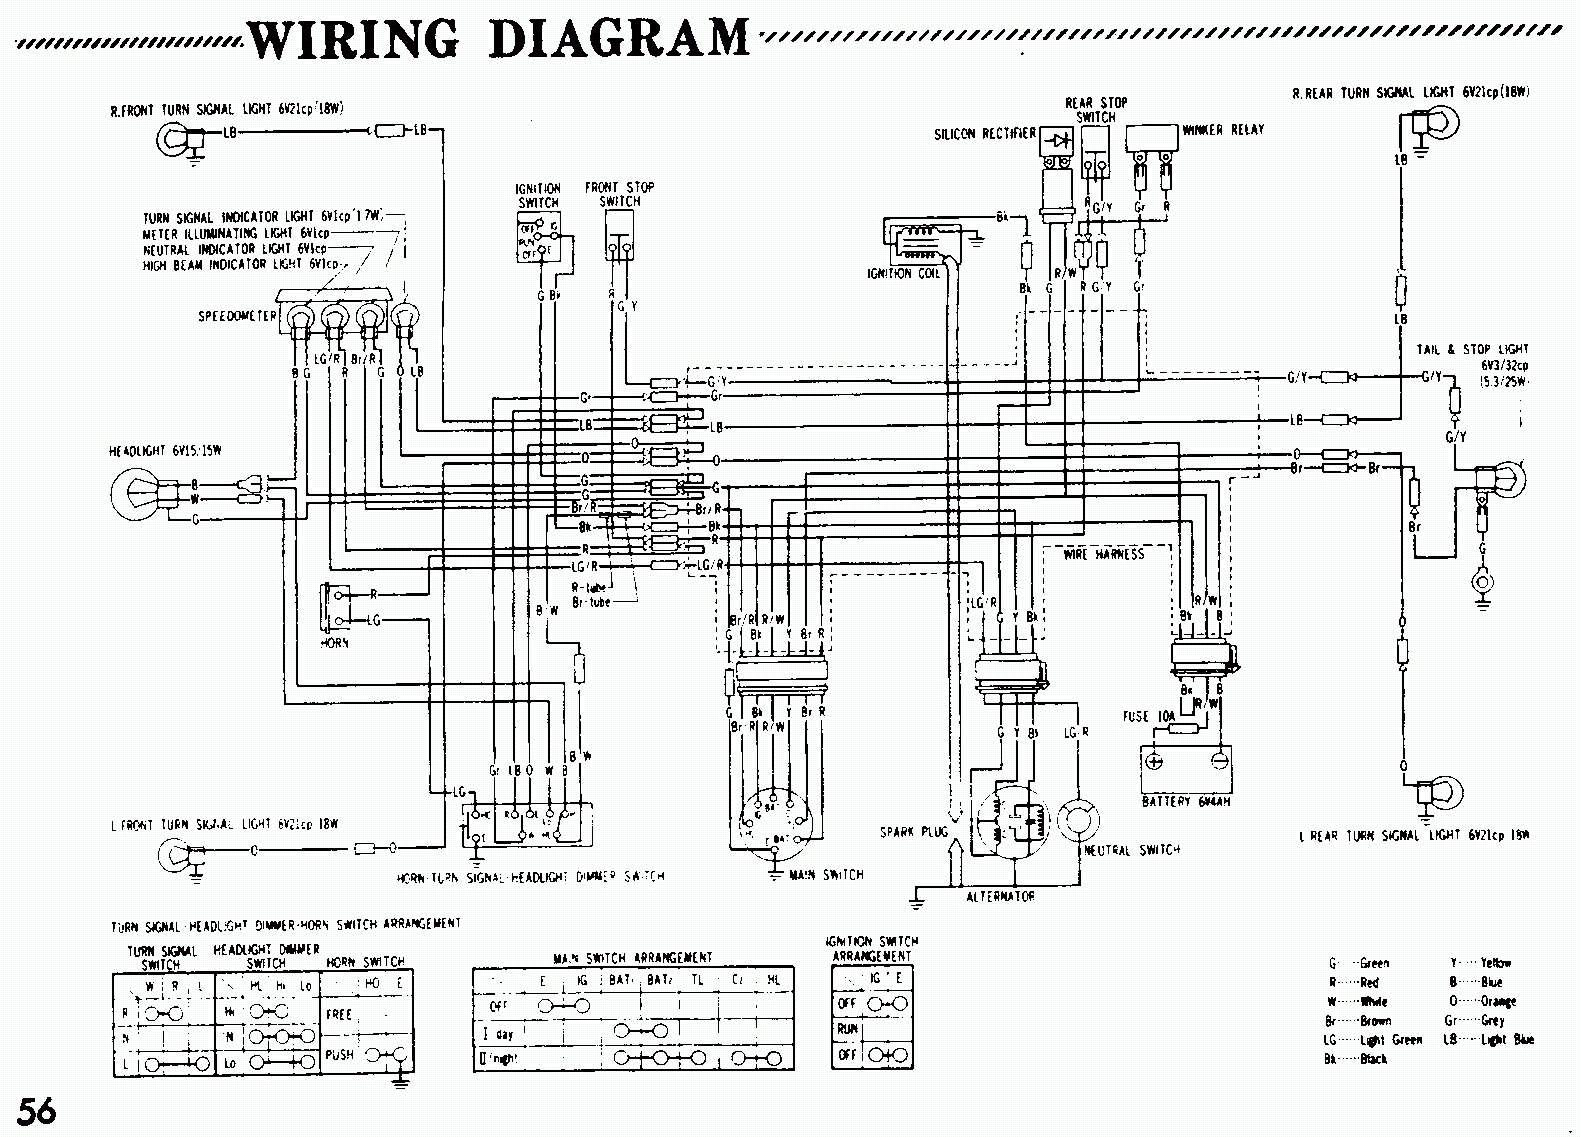 Klx 110 Wiring Diagram Diagrams For Dummies Kawasaki Four Wheeler Library Rh 64 Muehlwald De Atv Schematics